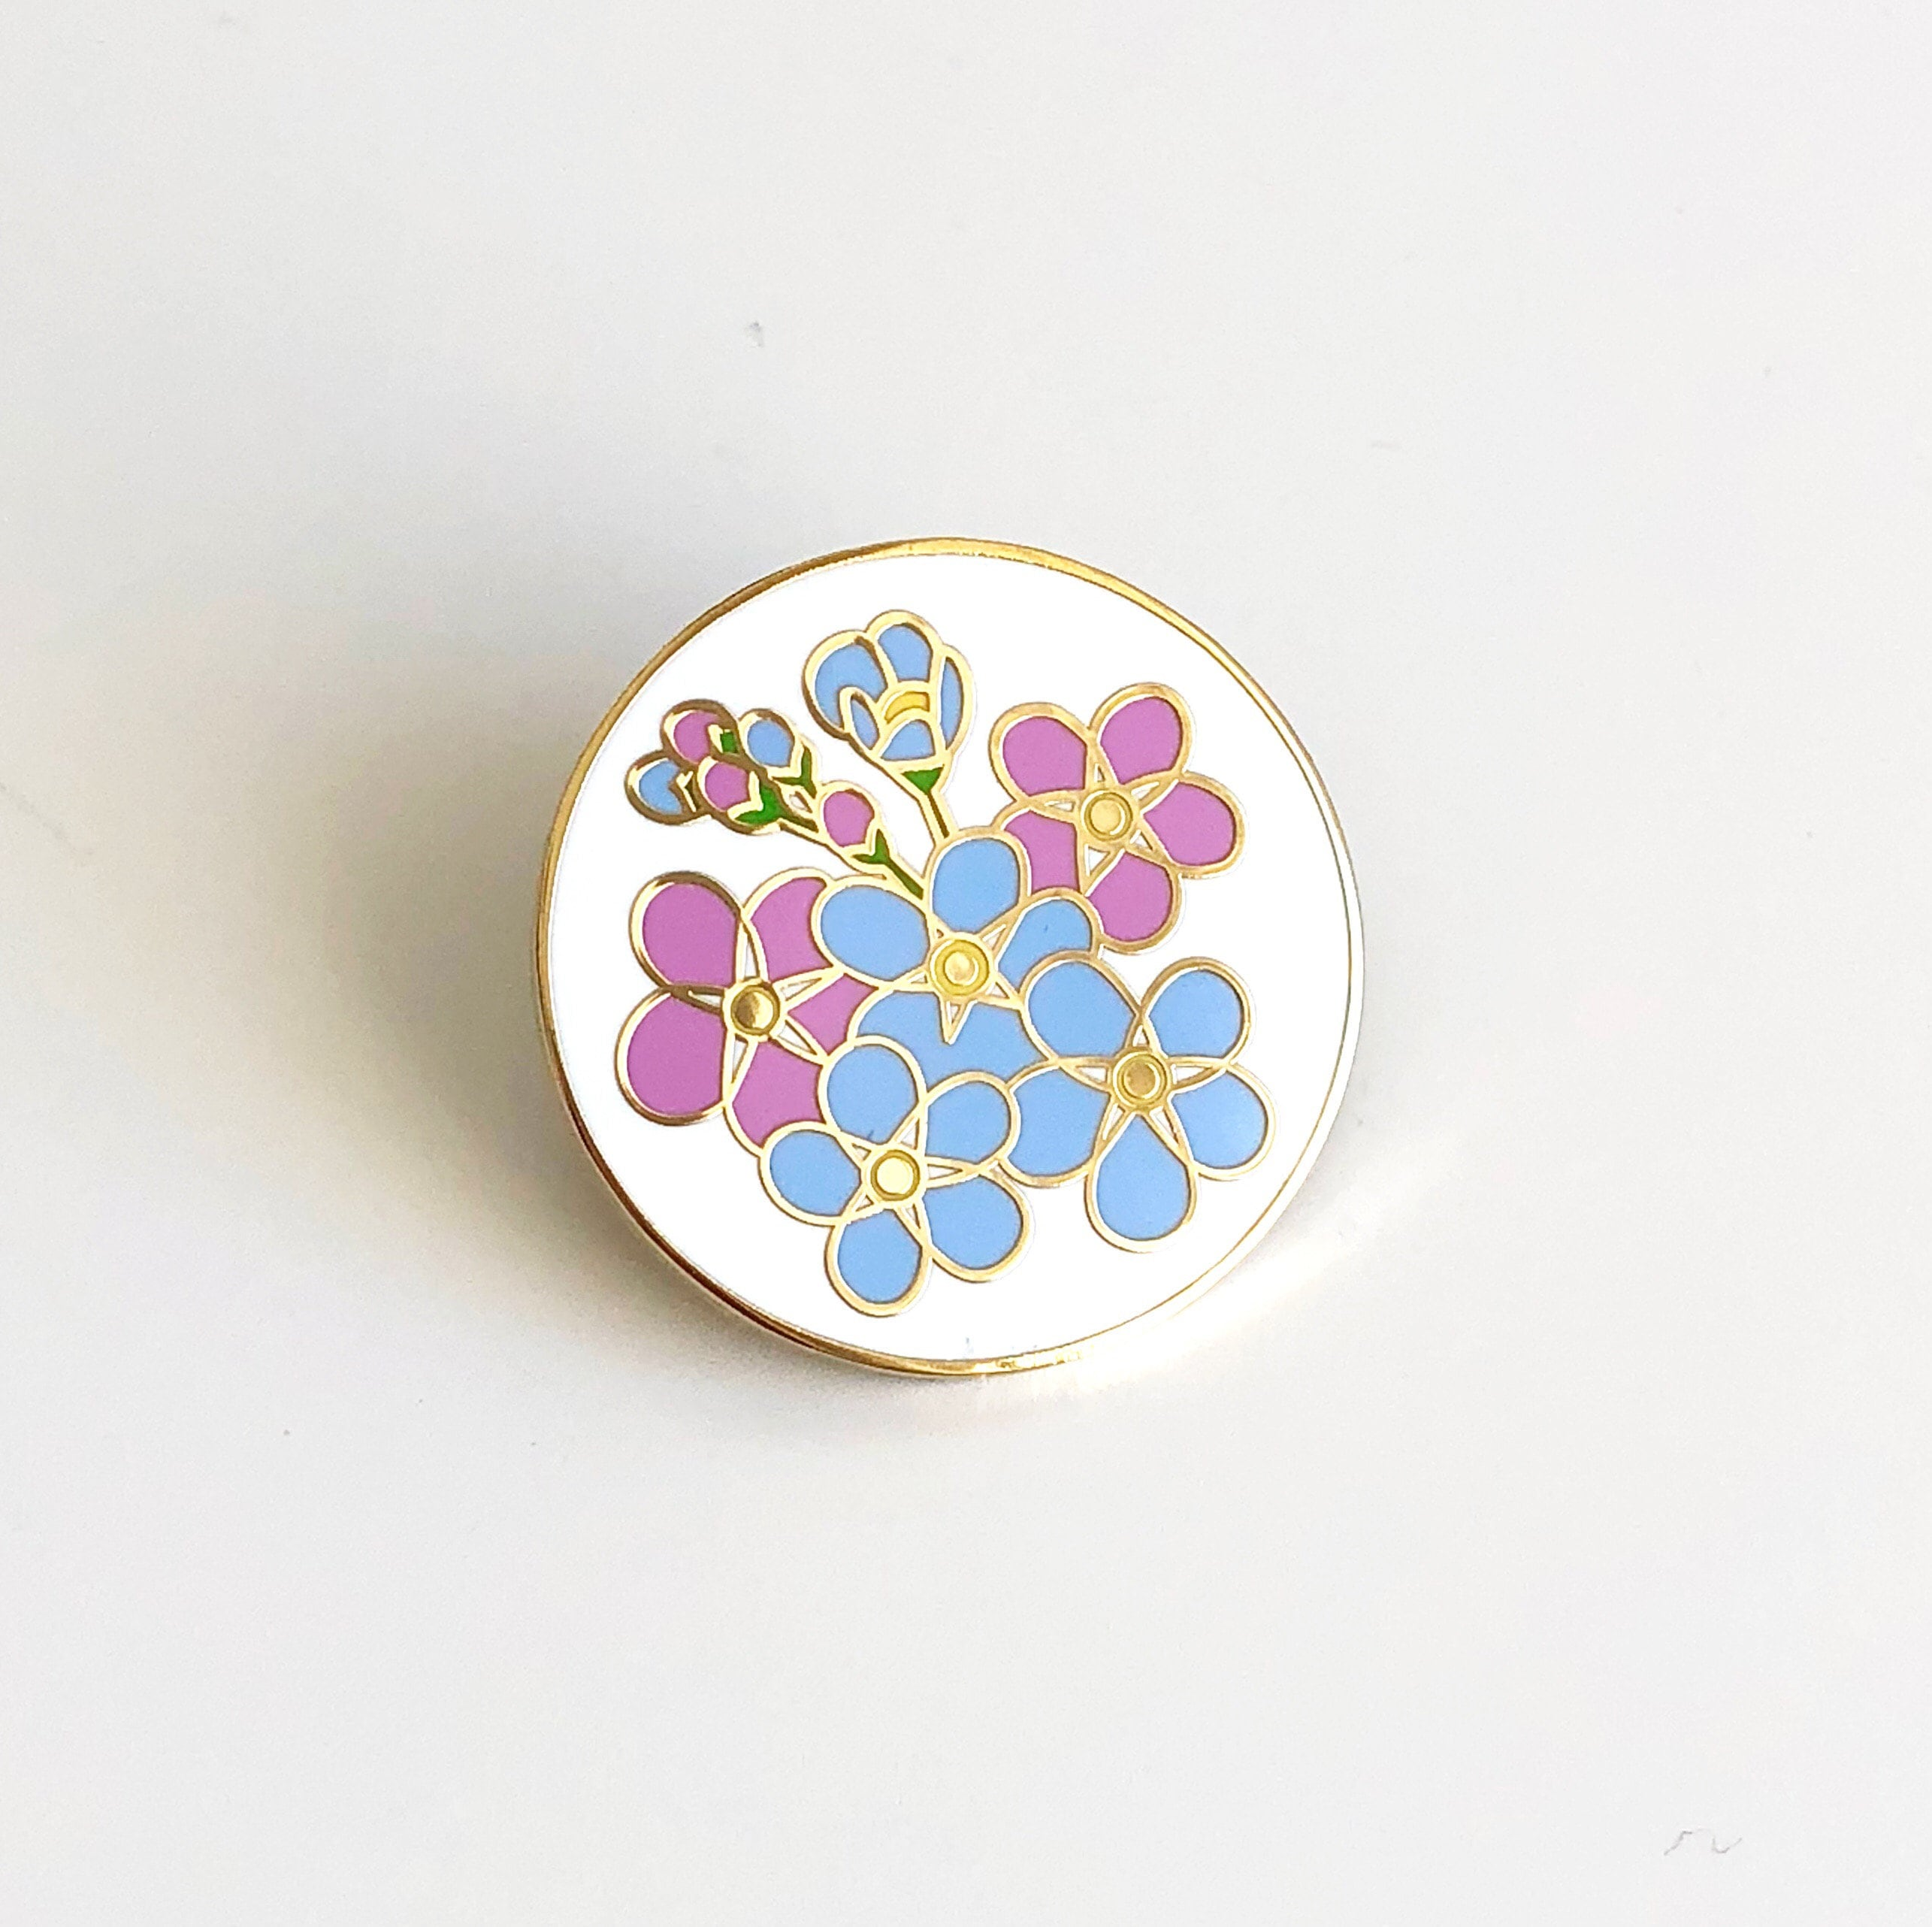 0fbb0f62ef4 Forget-me-not Enamel Pin - Alzheimer's Charity Pin - Dementia Awareness  Charity Pin - Forget Me Not Pin